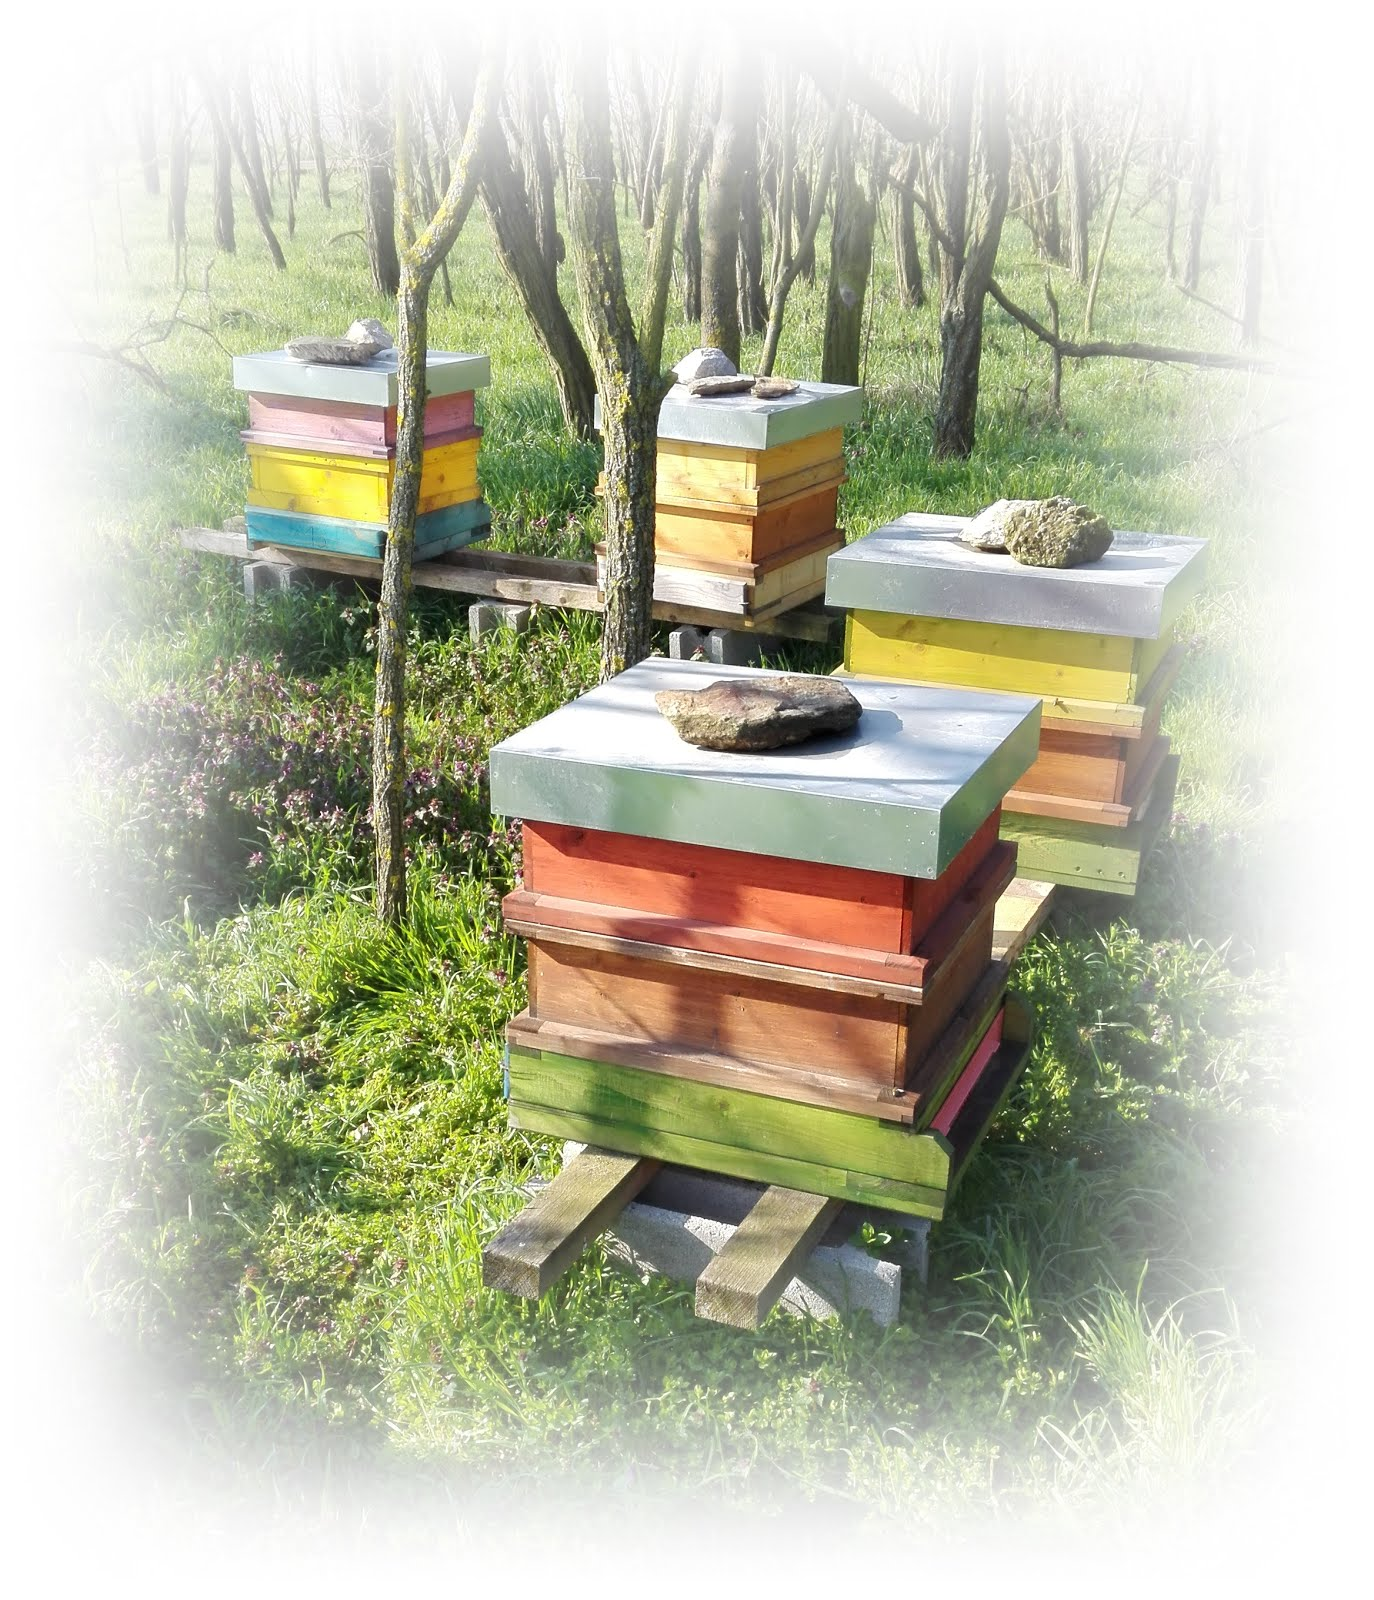 Sabine`s Welt der Bienen